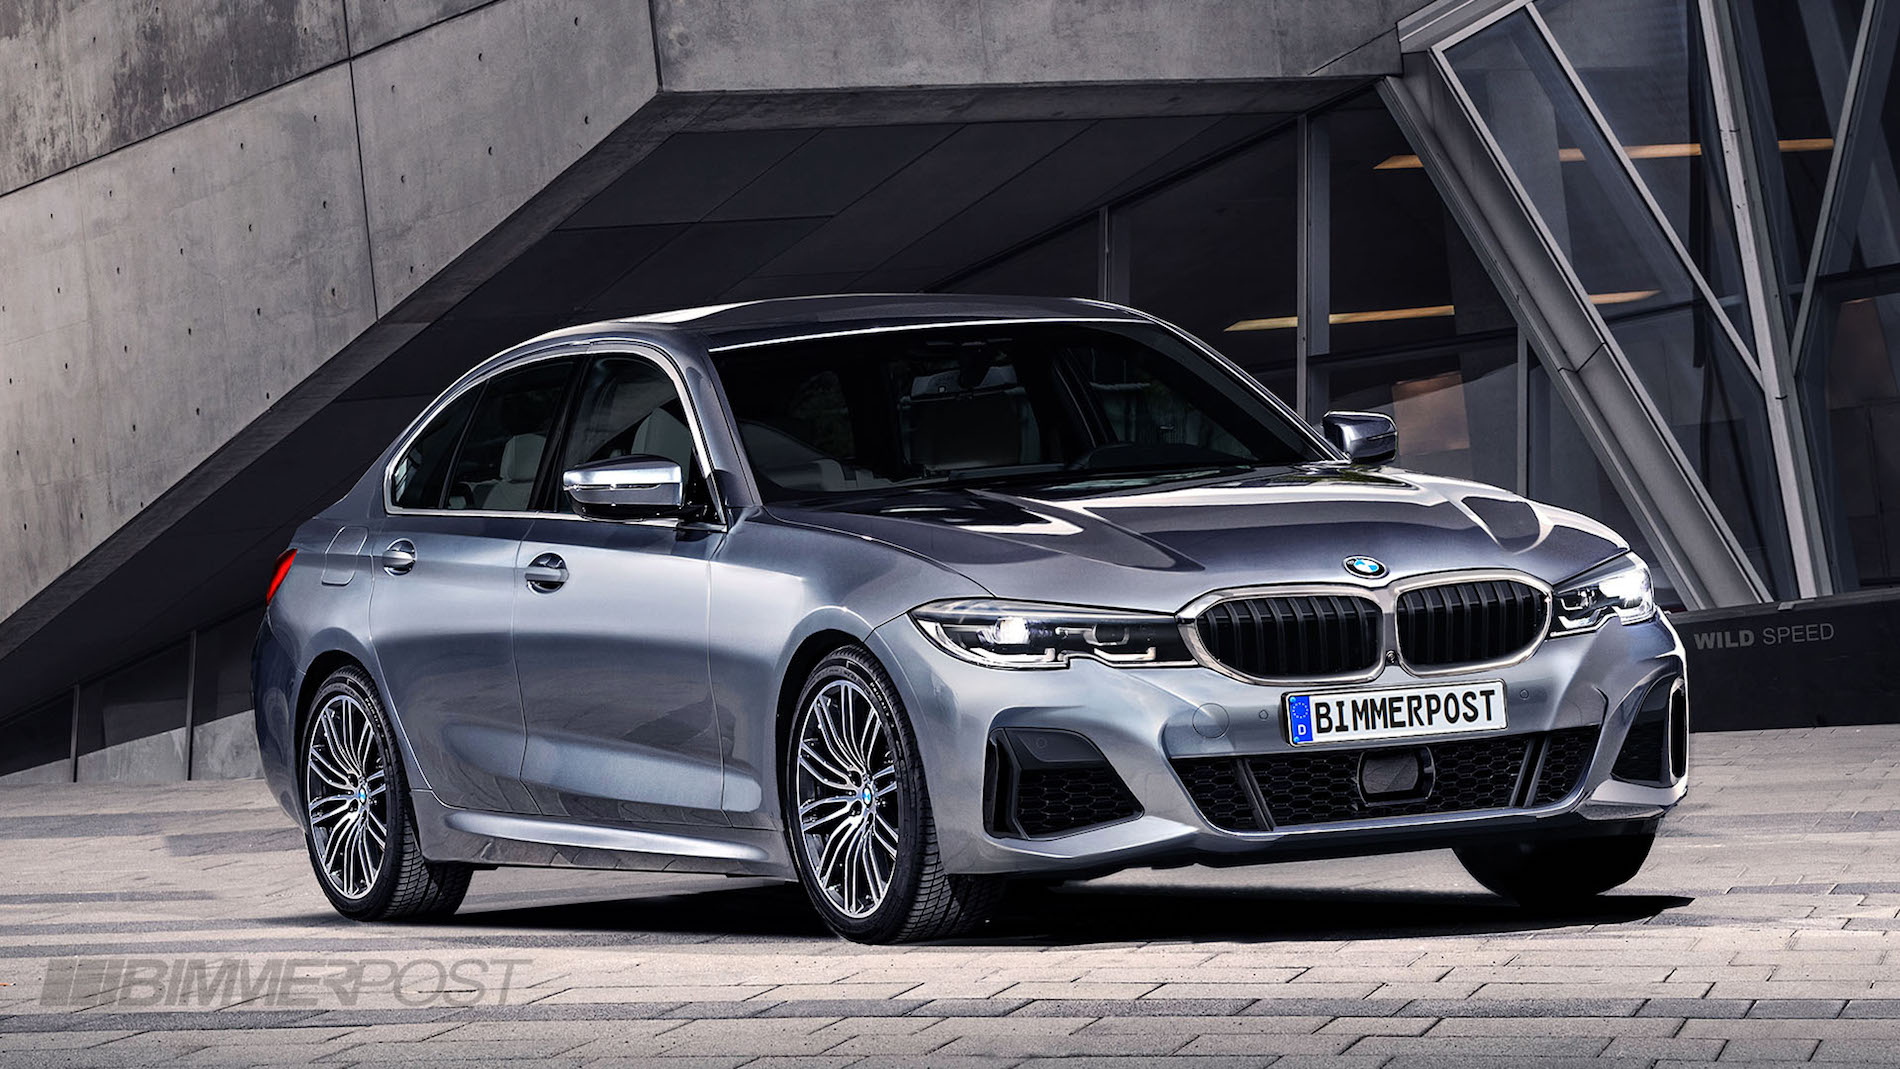 Bmw Serie 3 G20 >> G20 BMW 3 Series Rendered After Latest Spy Shots